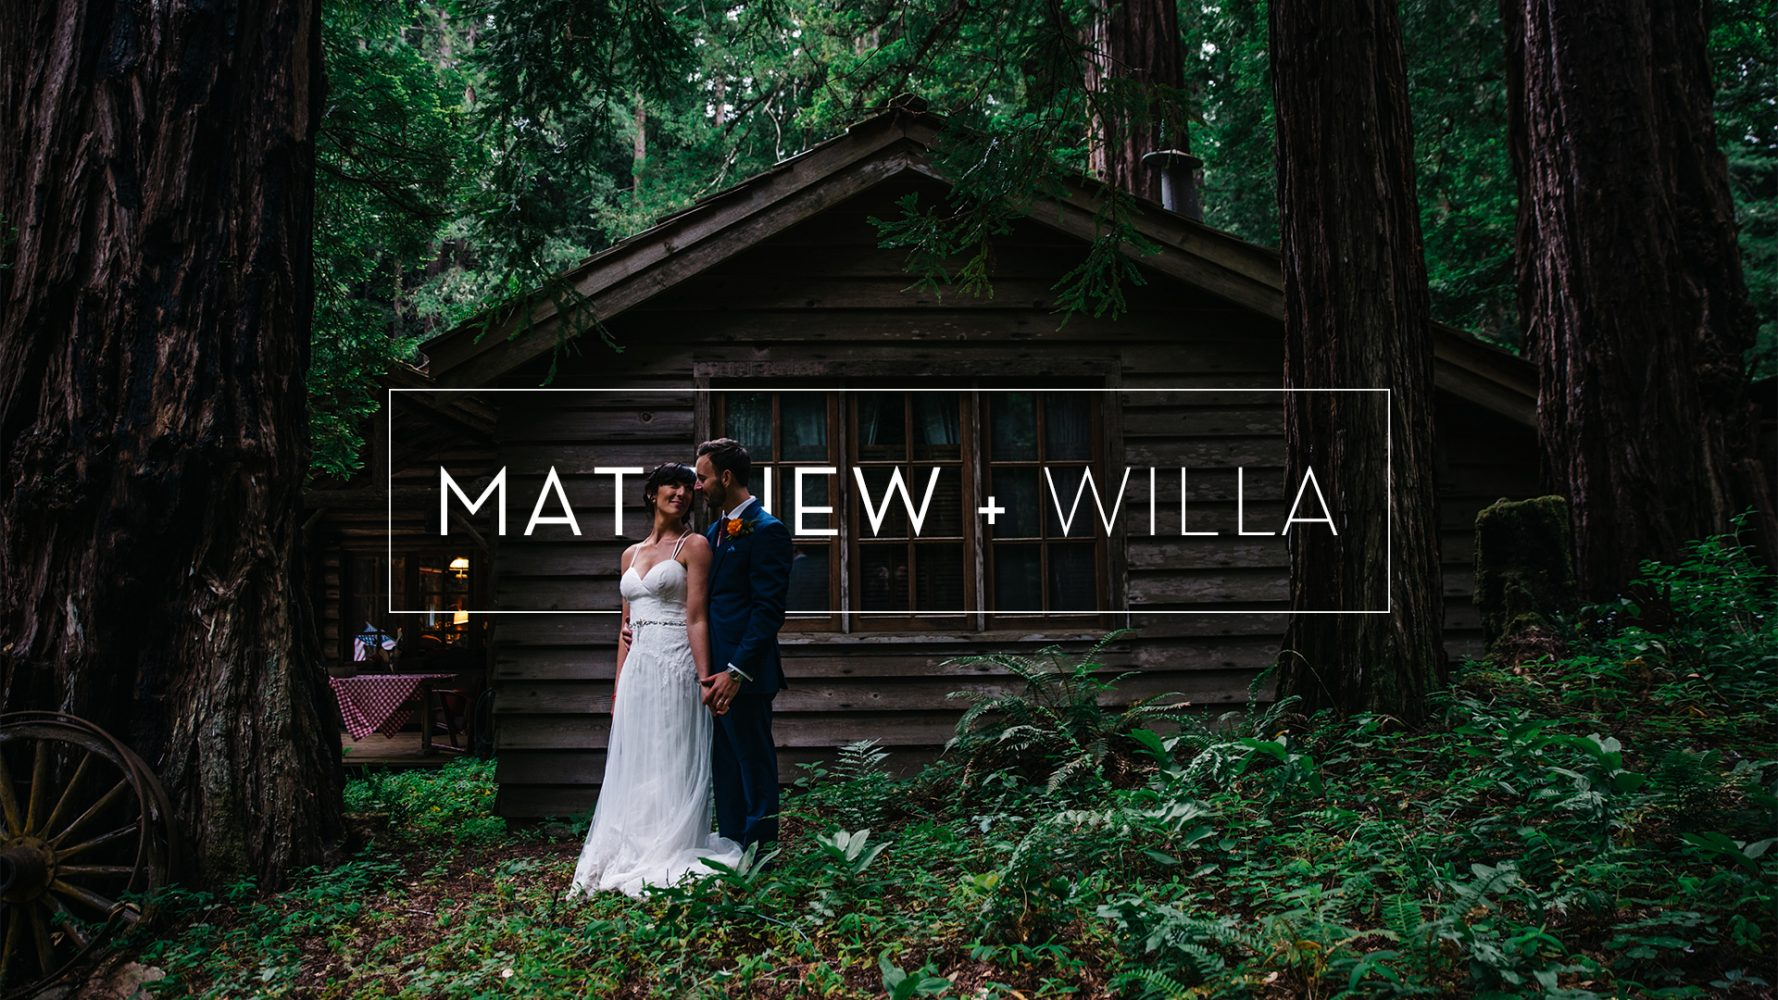 Willa + Matthew | Half Moon Bay, California | Island Farm Private Estate